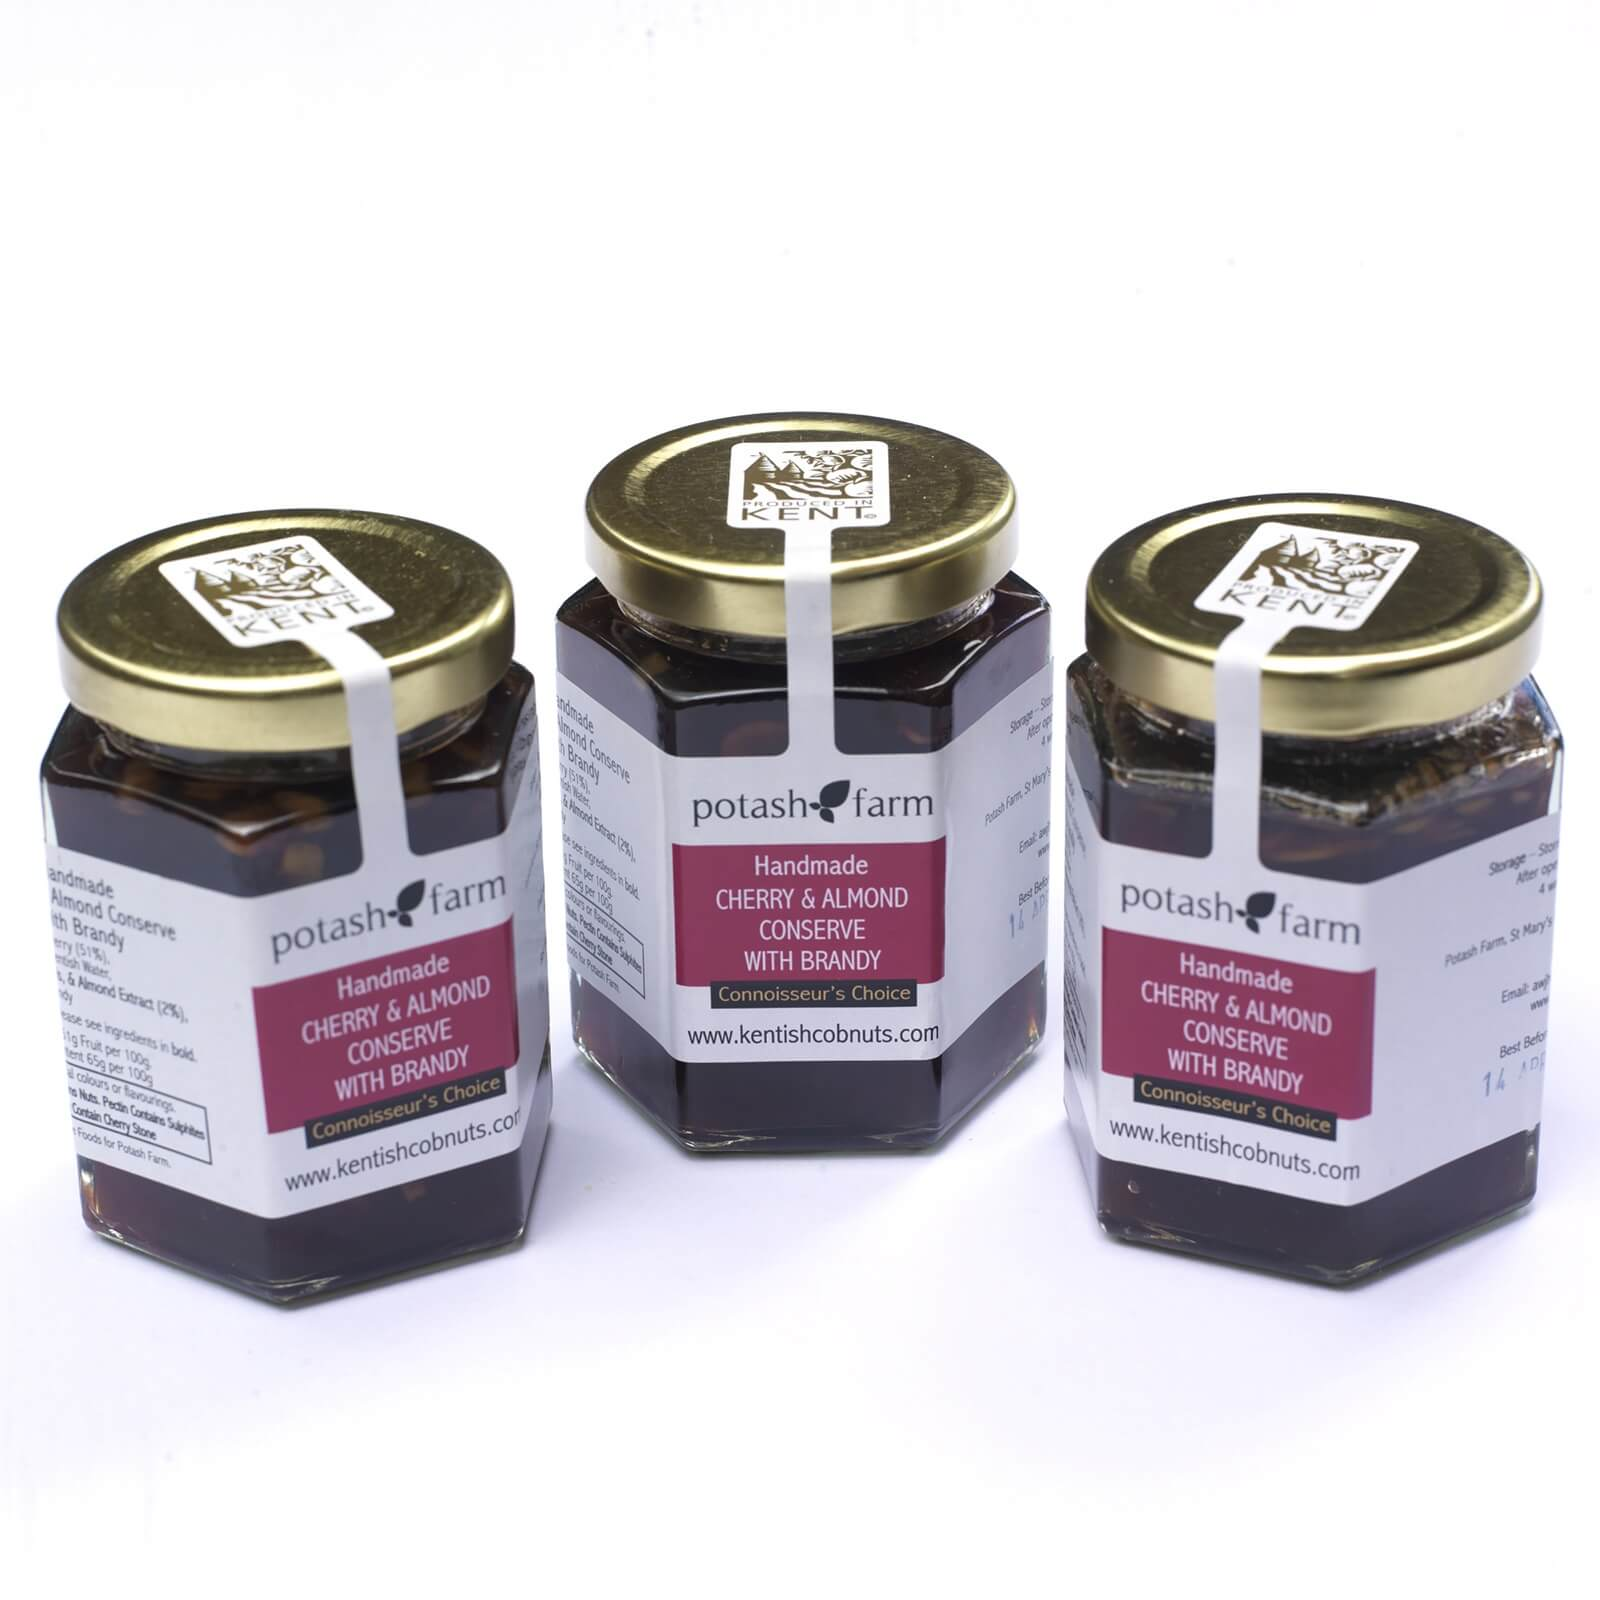 Cherry and Almond Conserve with Brandy - This luxury handmade connoisseur's choice conserve is made with the finest of ingredients and is a real treat to have on a lazy Sunday morning.